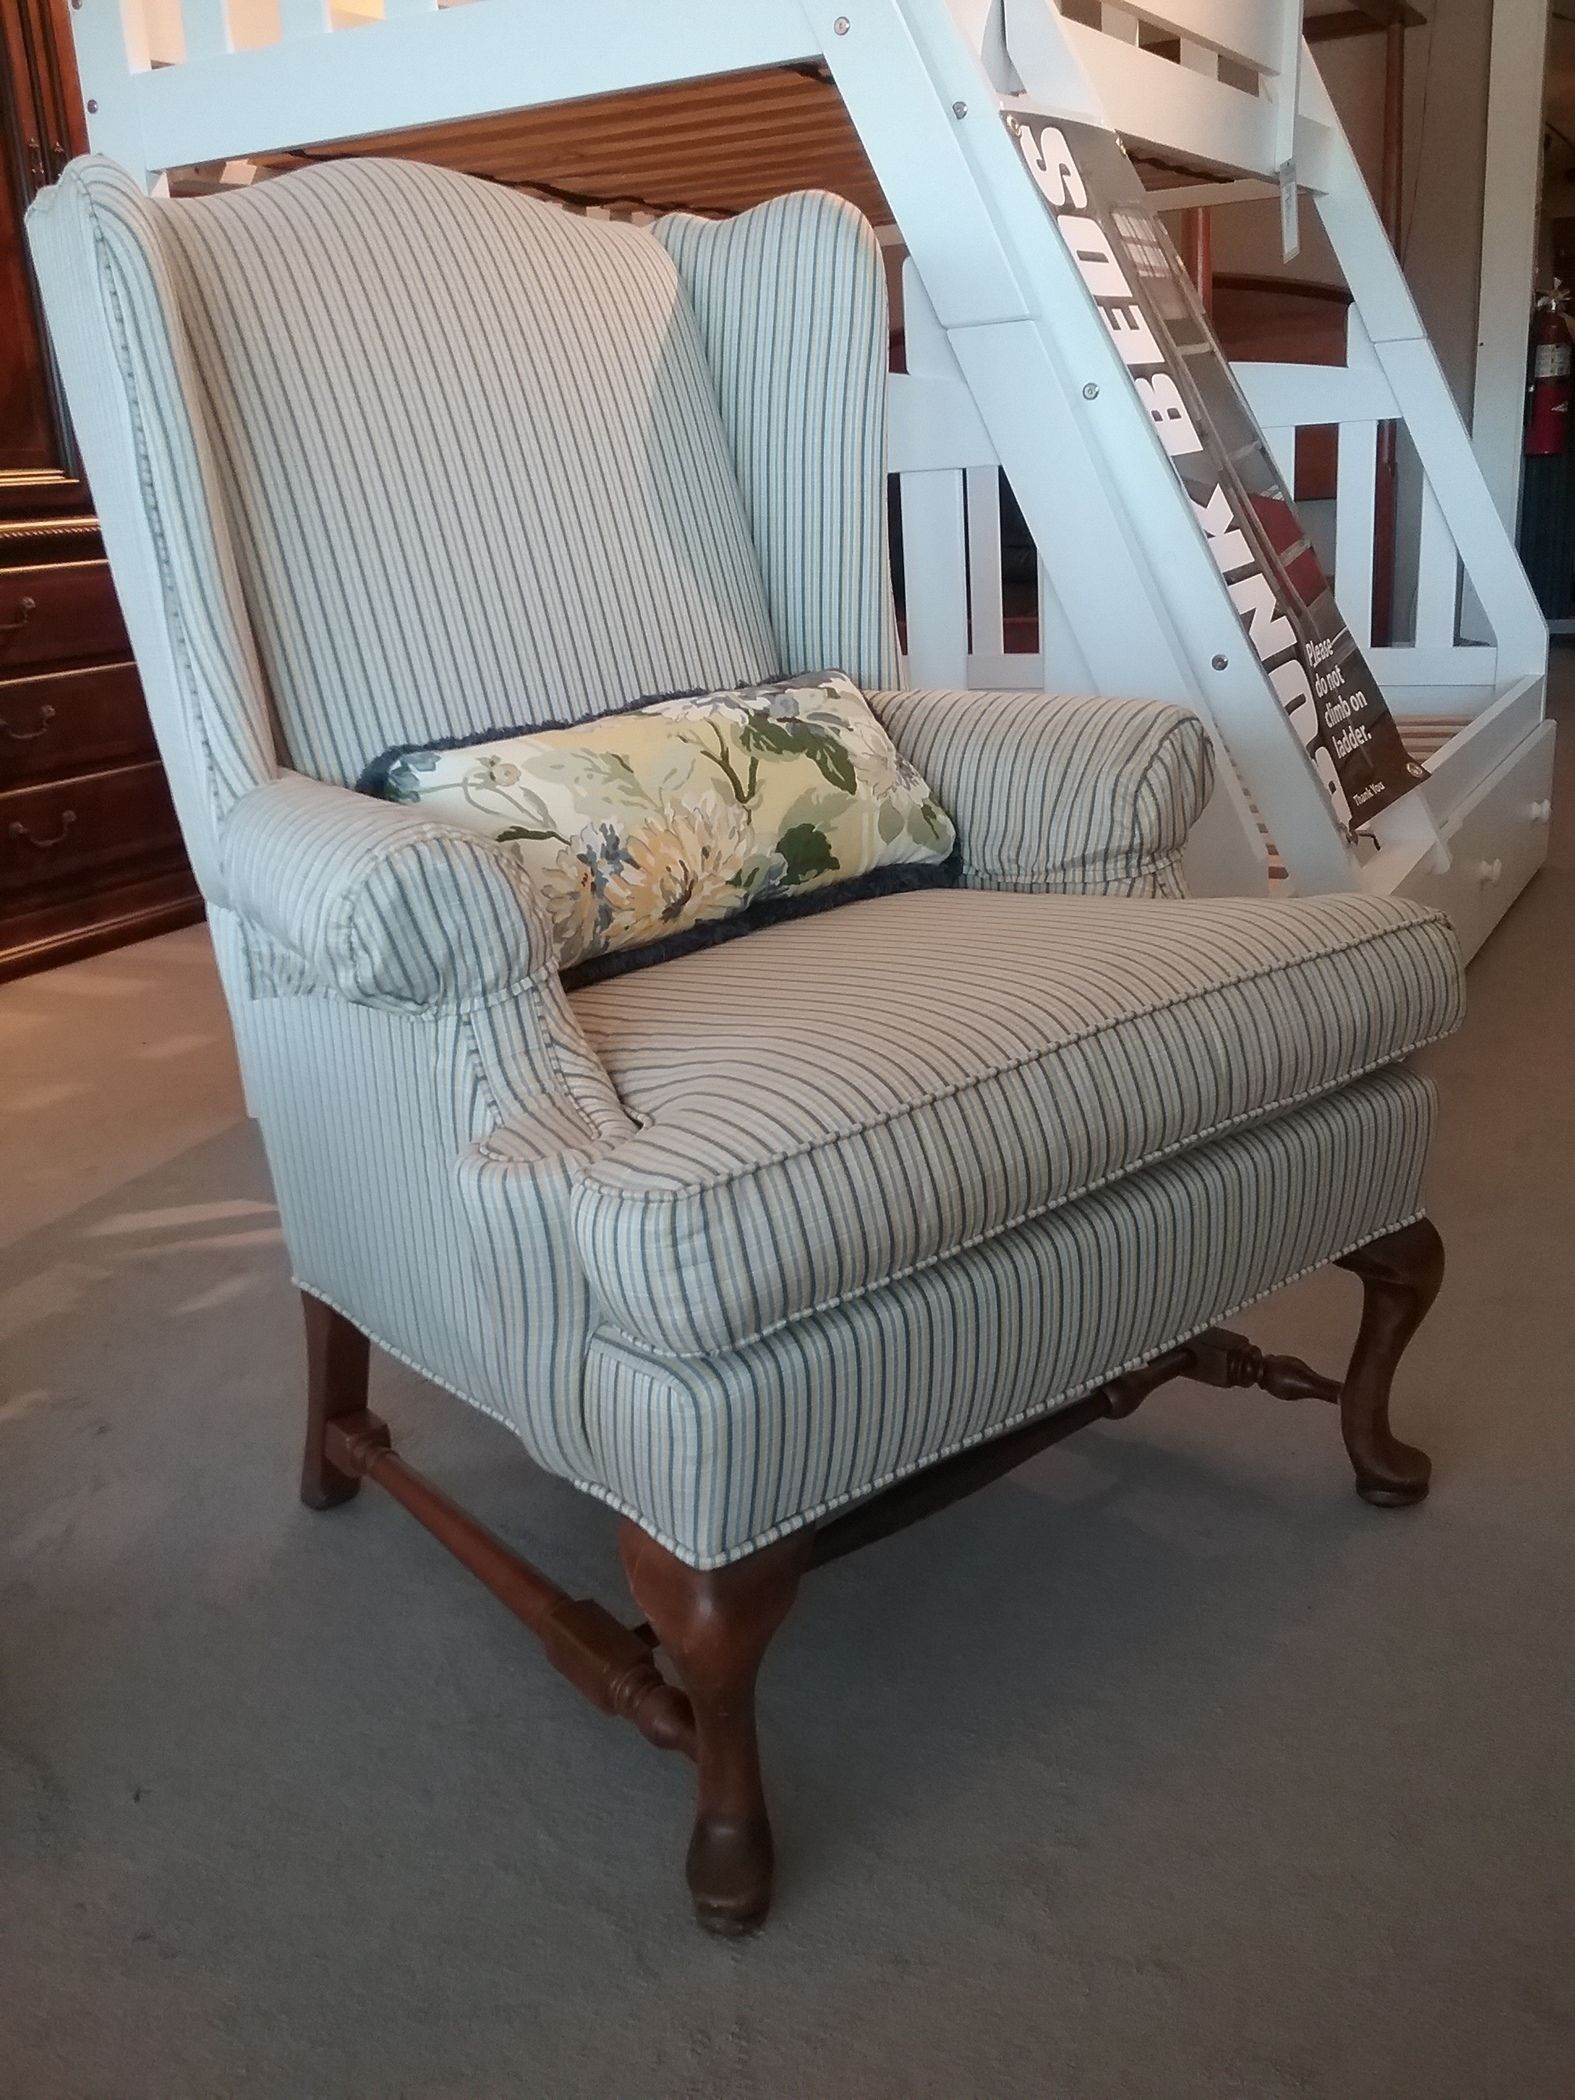 Ethan Allen Wingback Chair Delmarva Furniture Consignment